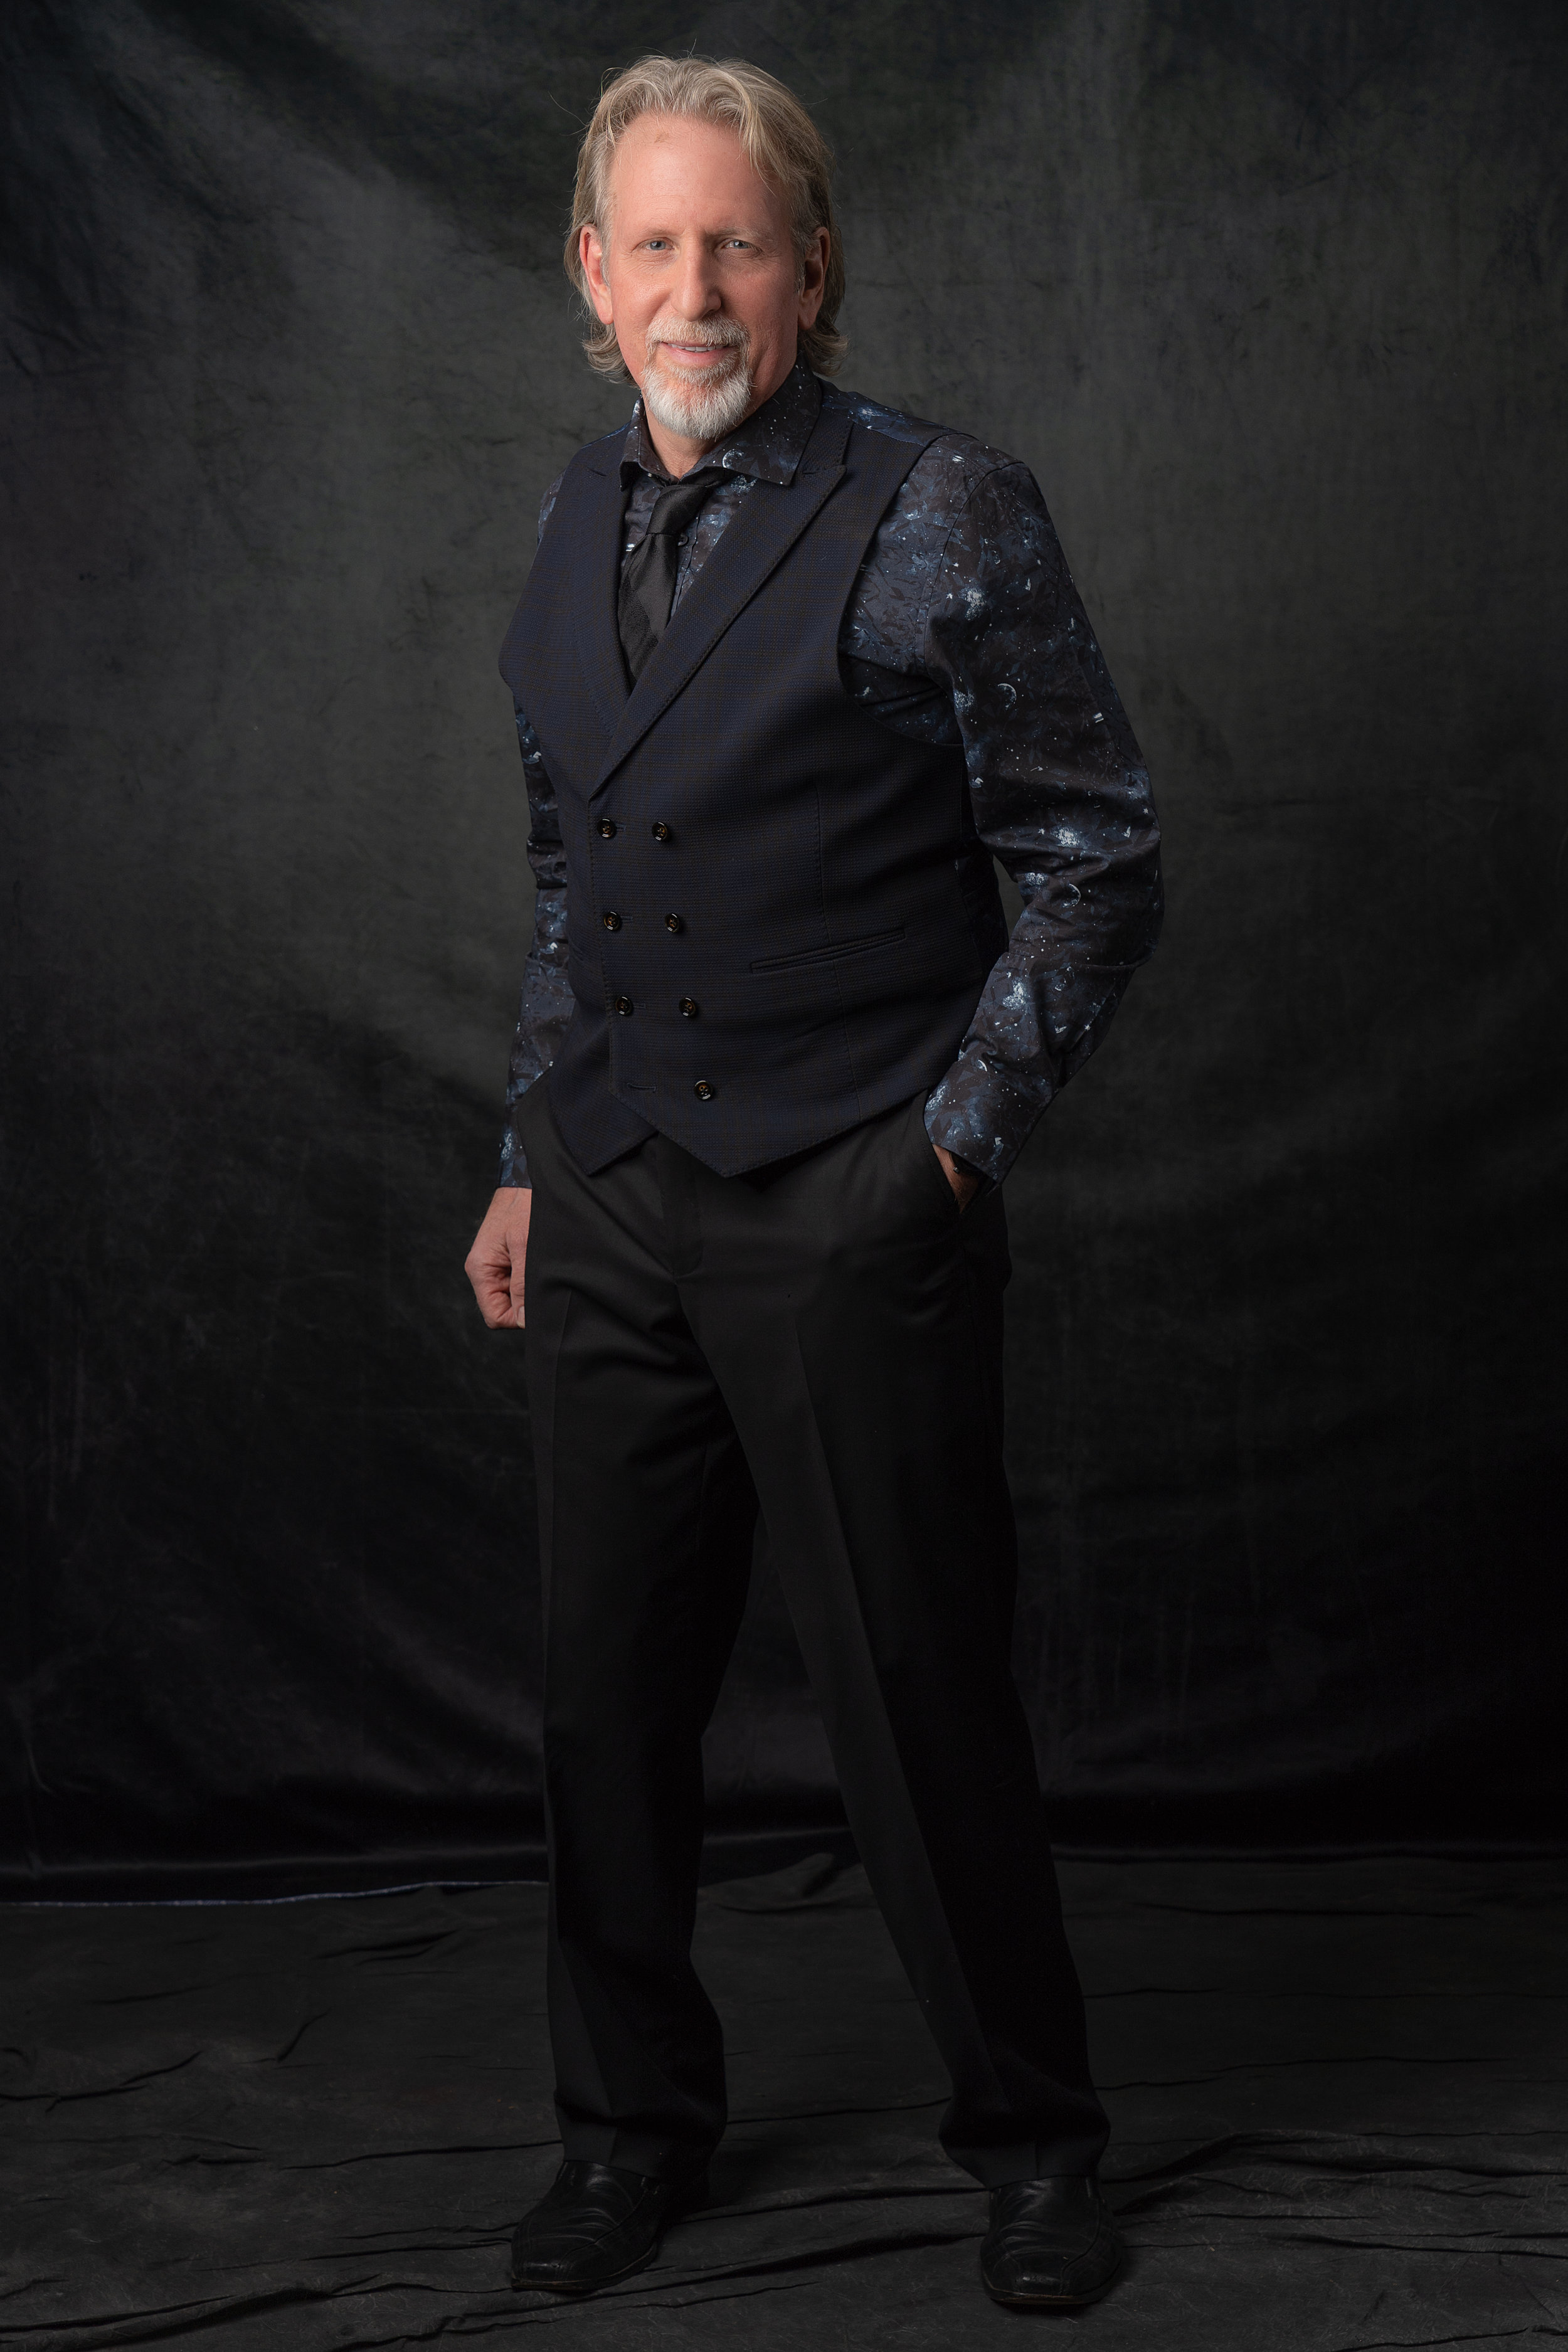 Music Director & Producer Mark Oliverius